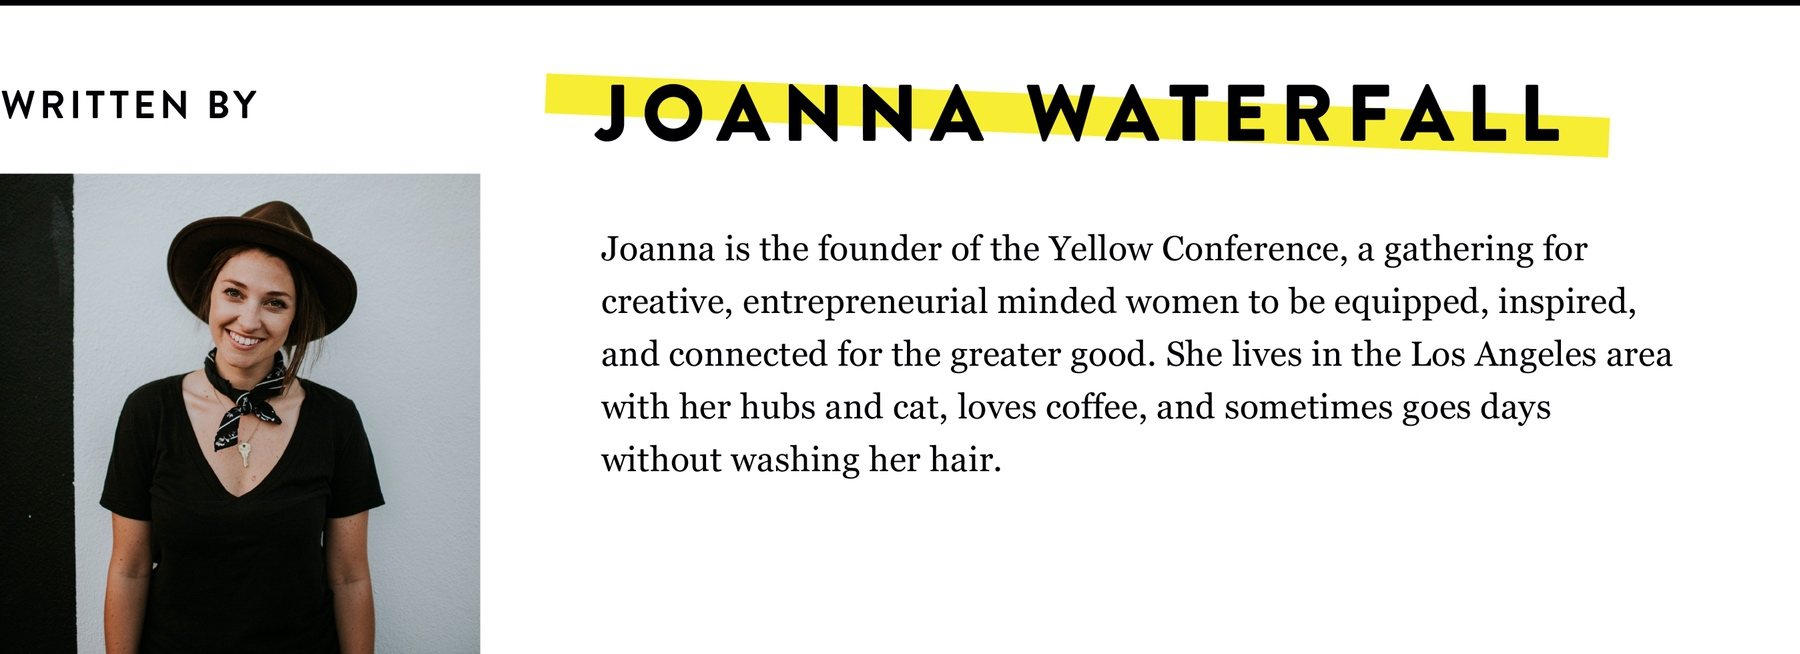 JOANNA WATERFALL BIO